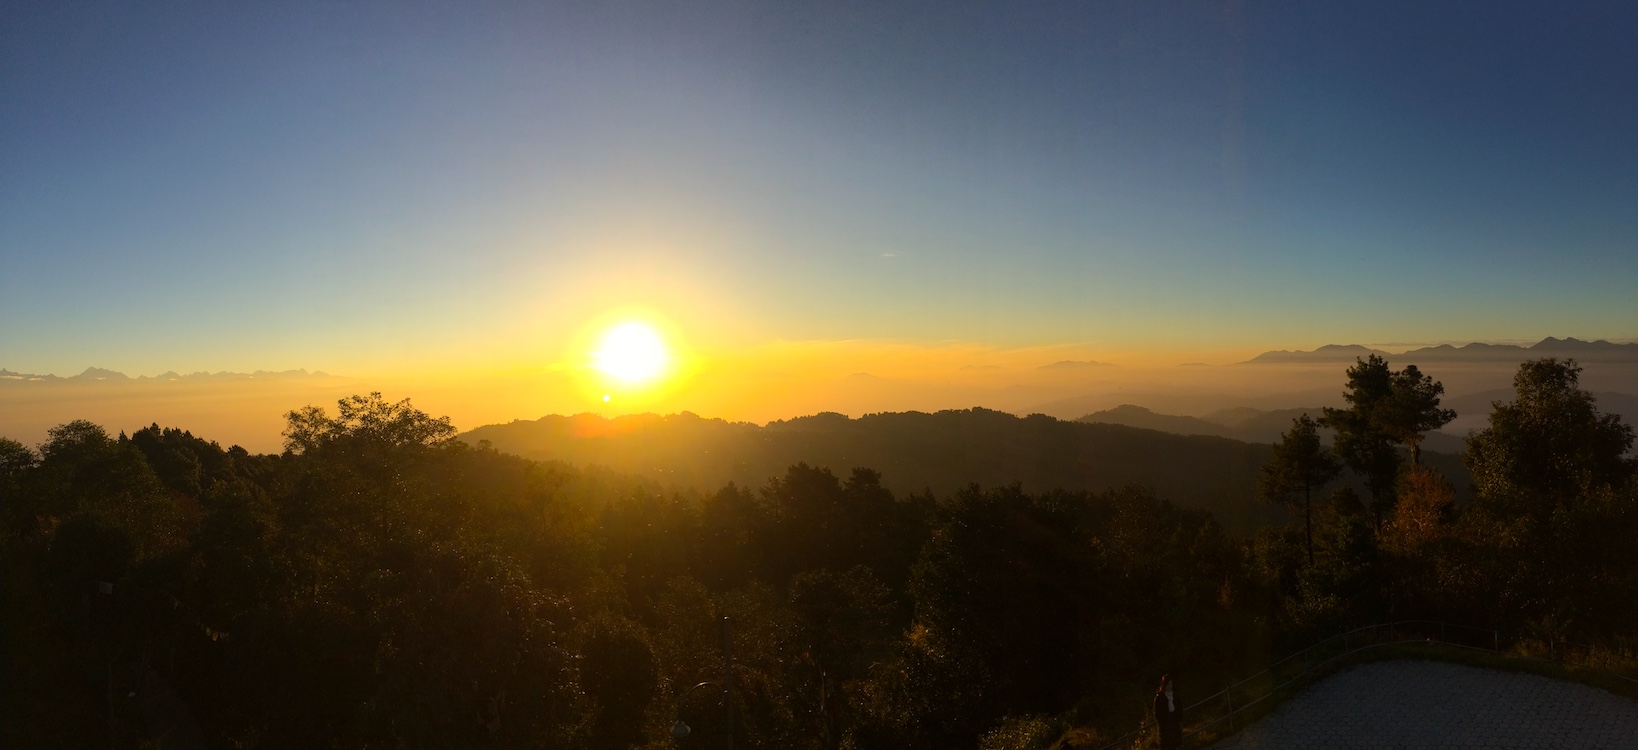 Nagarkot Tower Sunrise